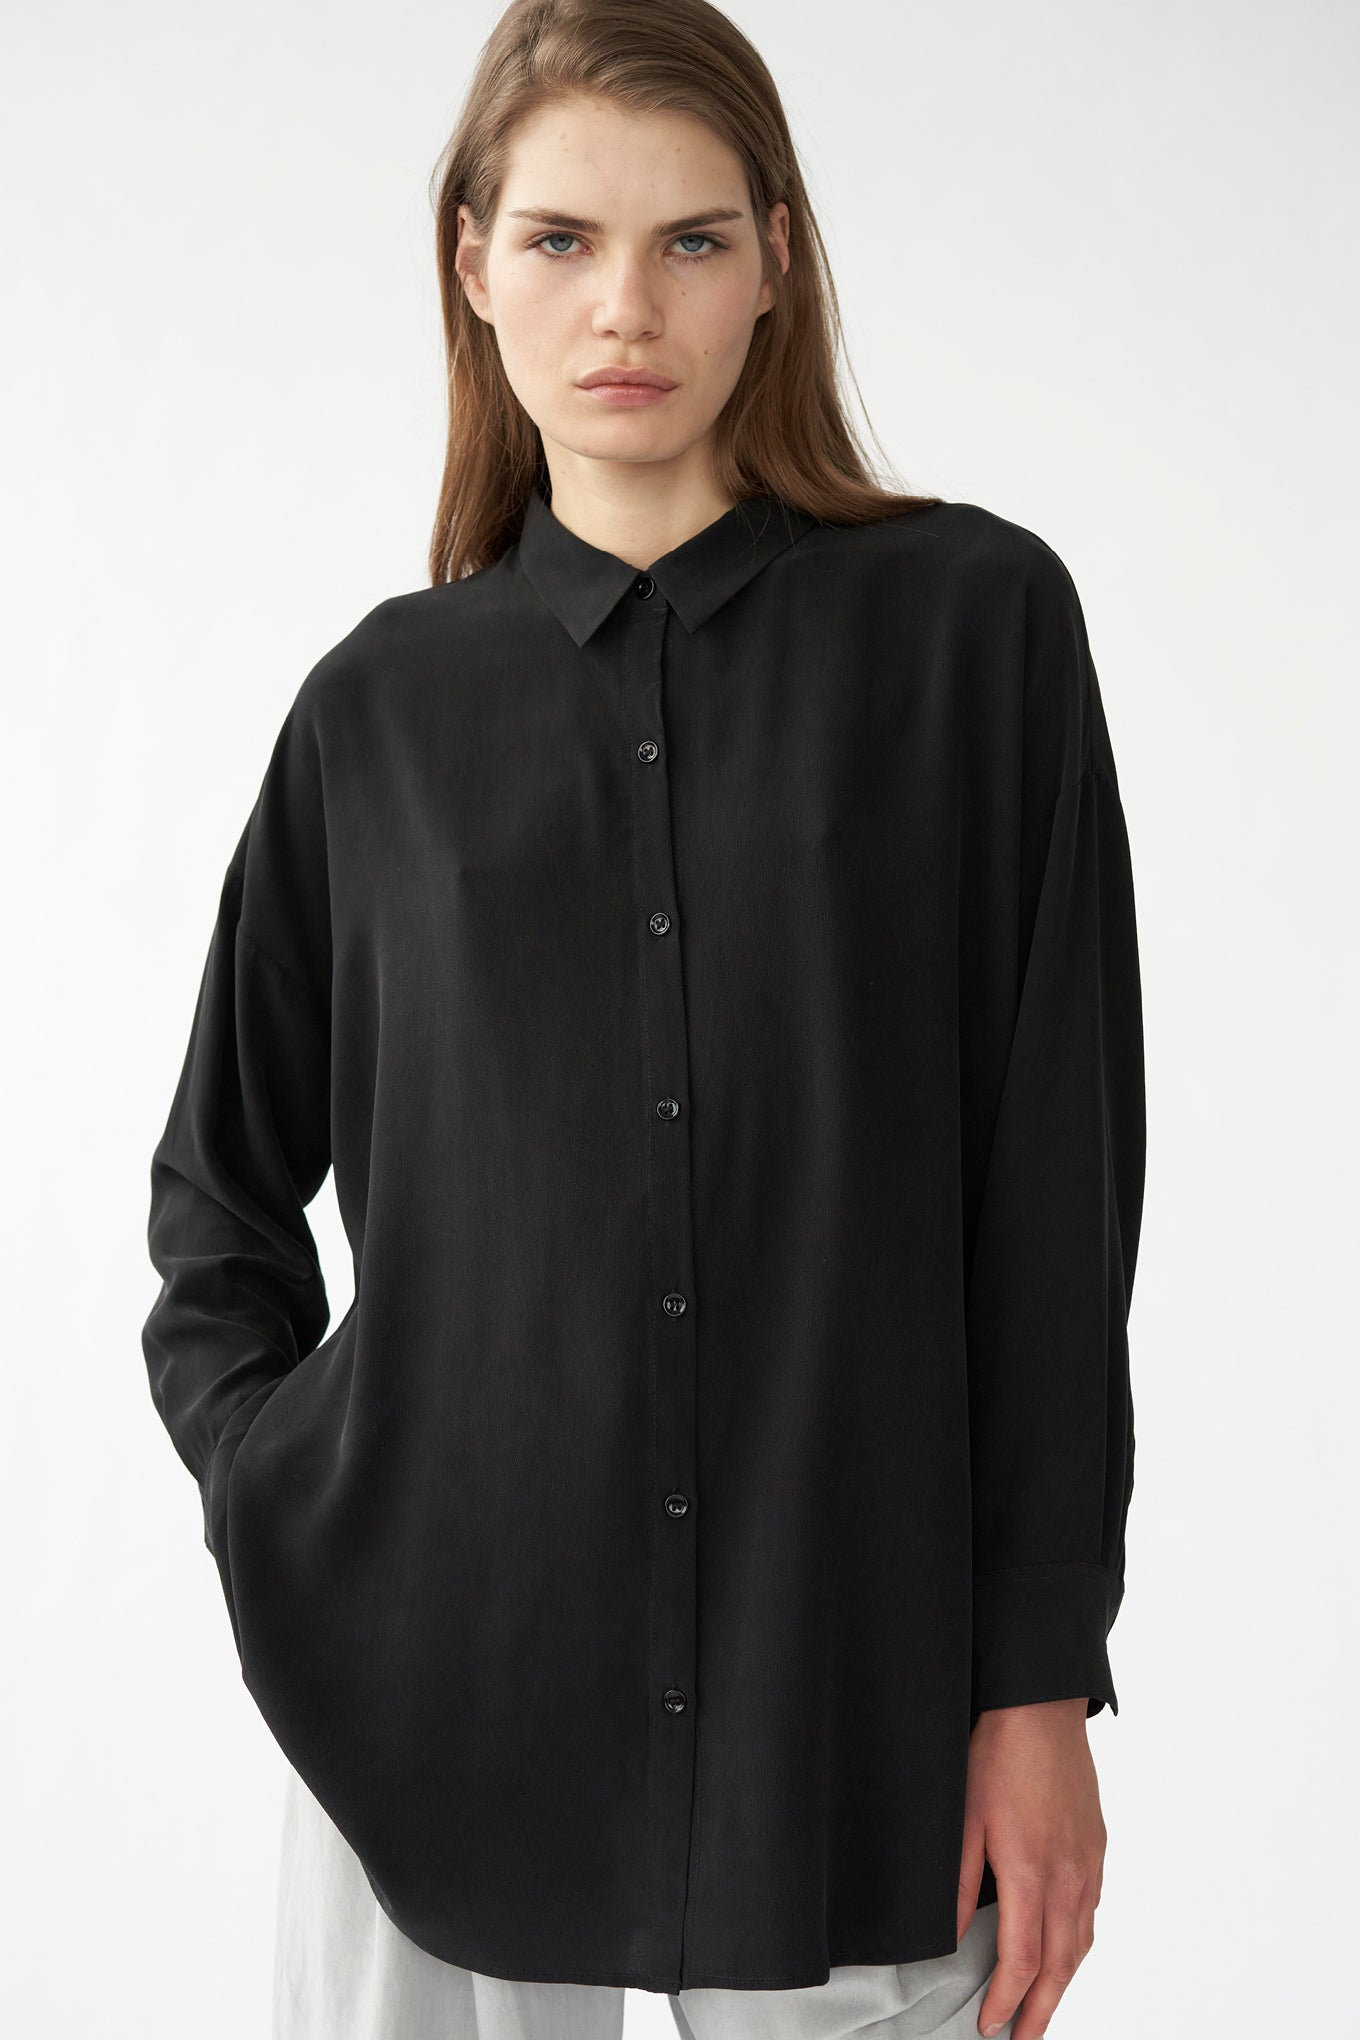 BIANCA LS SHIRT - BLACK